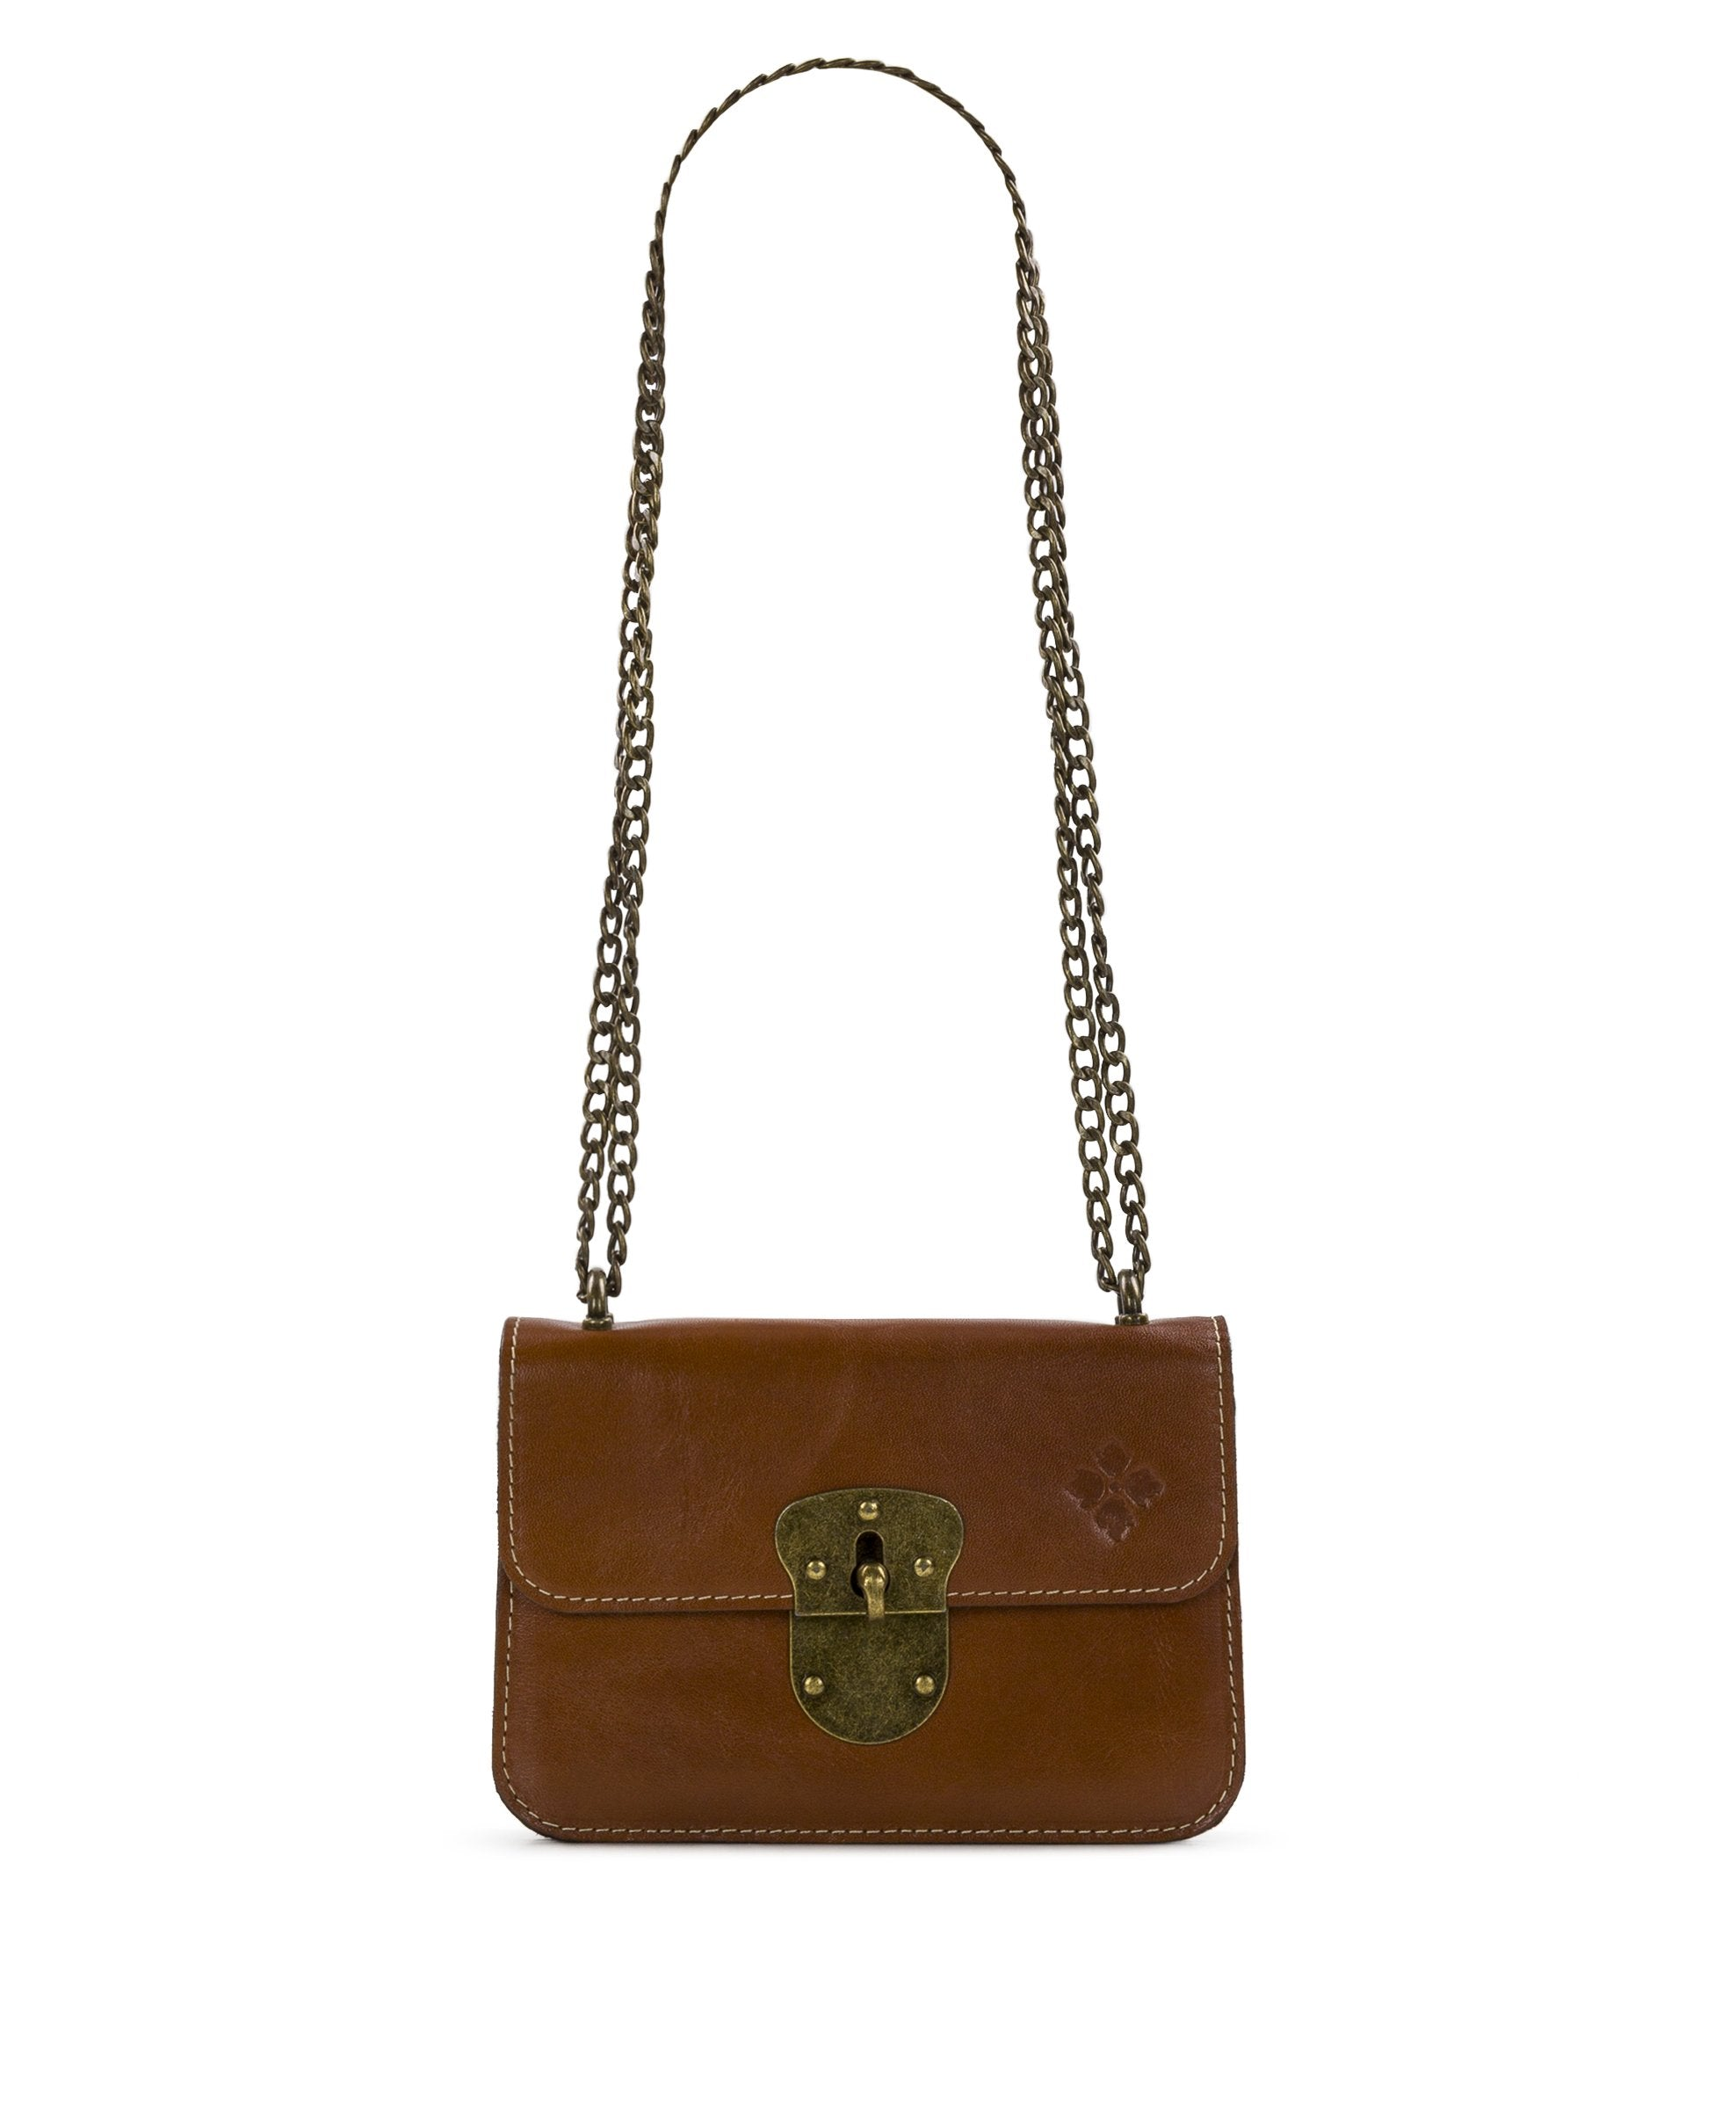 Laterza Chain Bag - Heritage - Laterza Chain Bag - Heritage